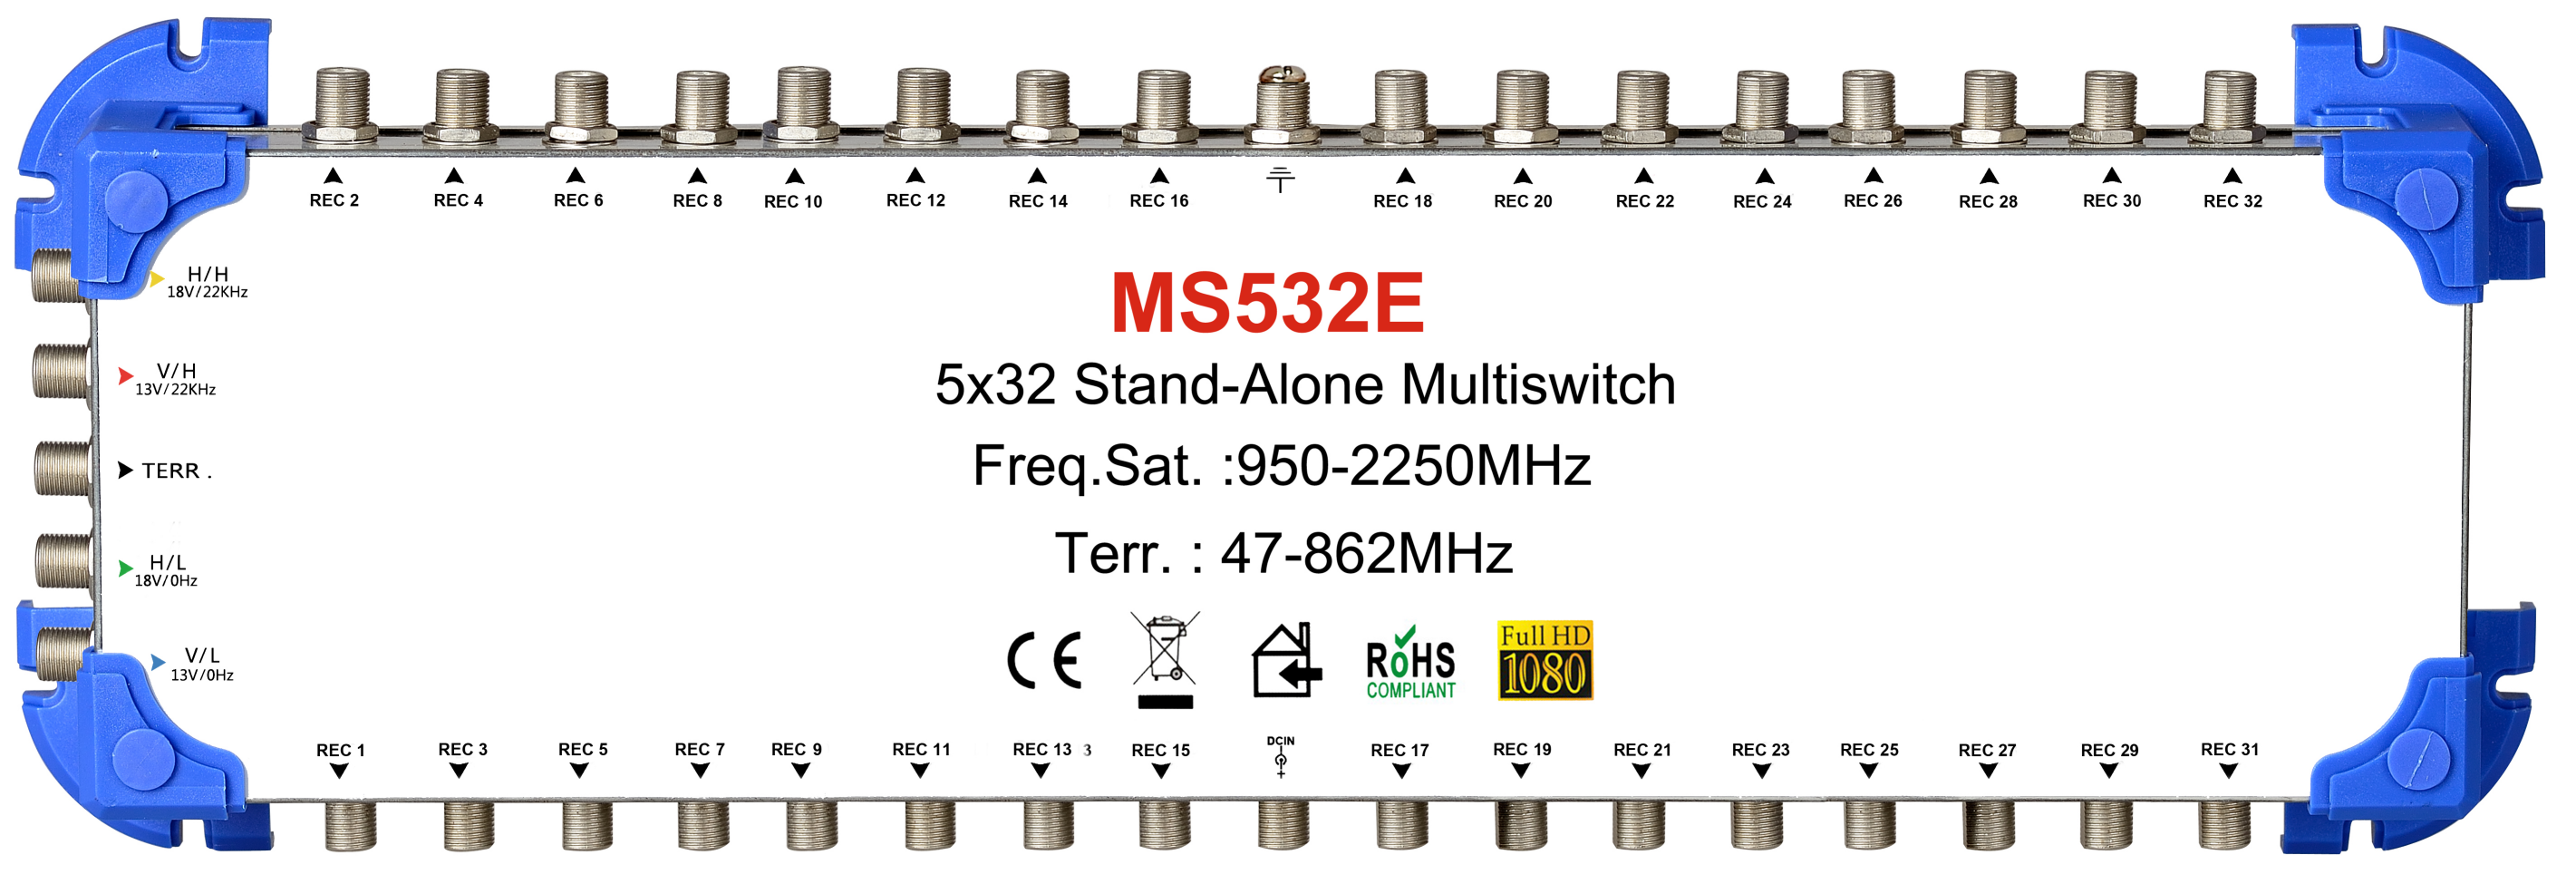 MT-7501 24 Multiswitch 5in Satellite Multiswitch System Sistema SMATV 5x32 Salida Para CATV